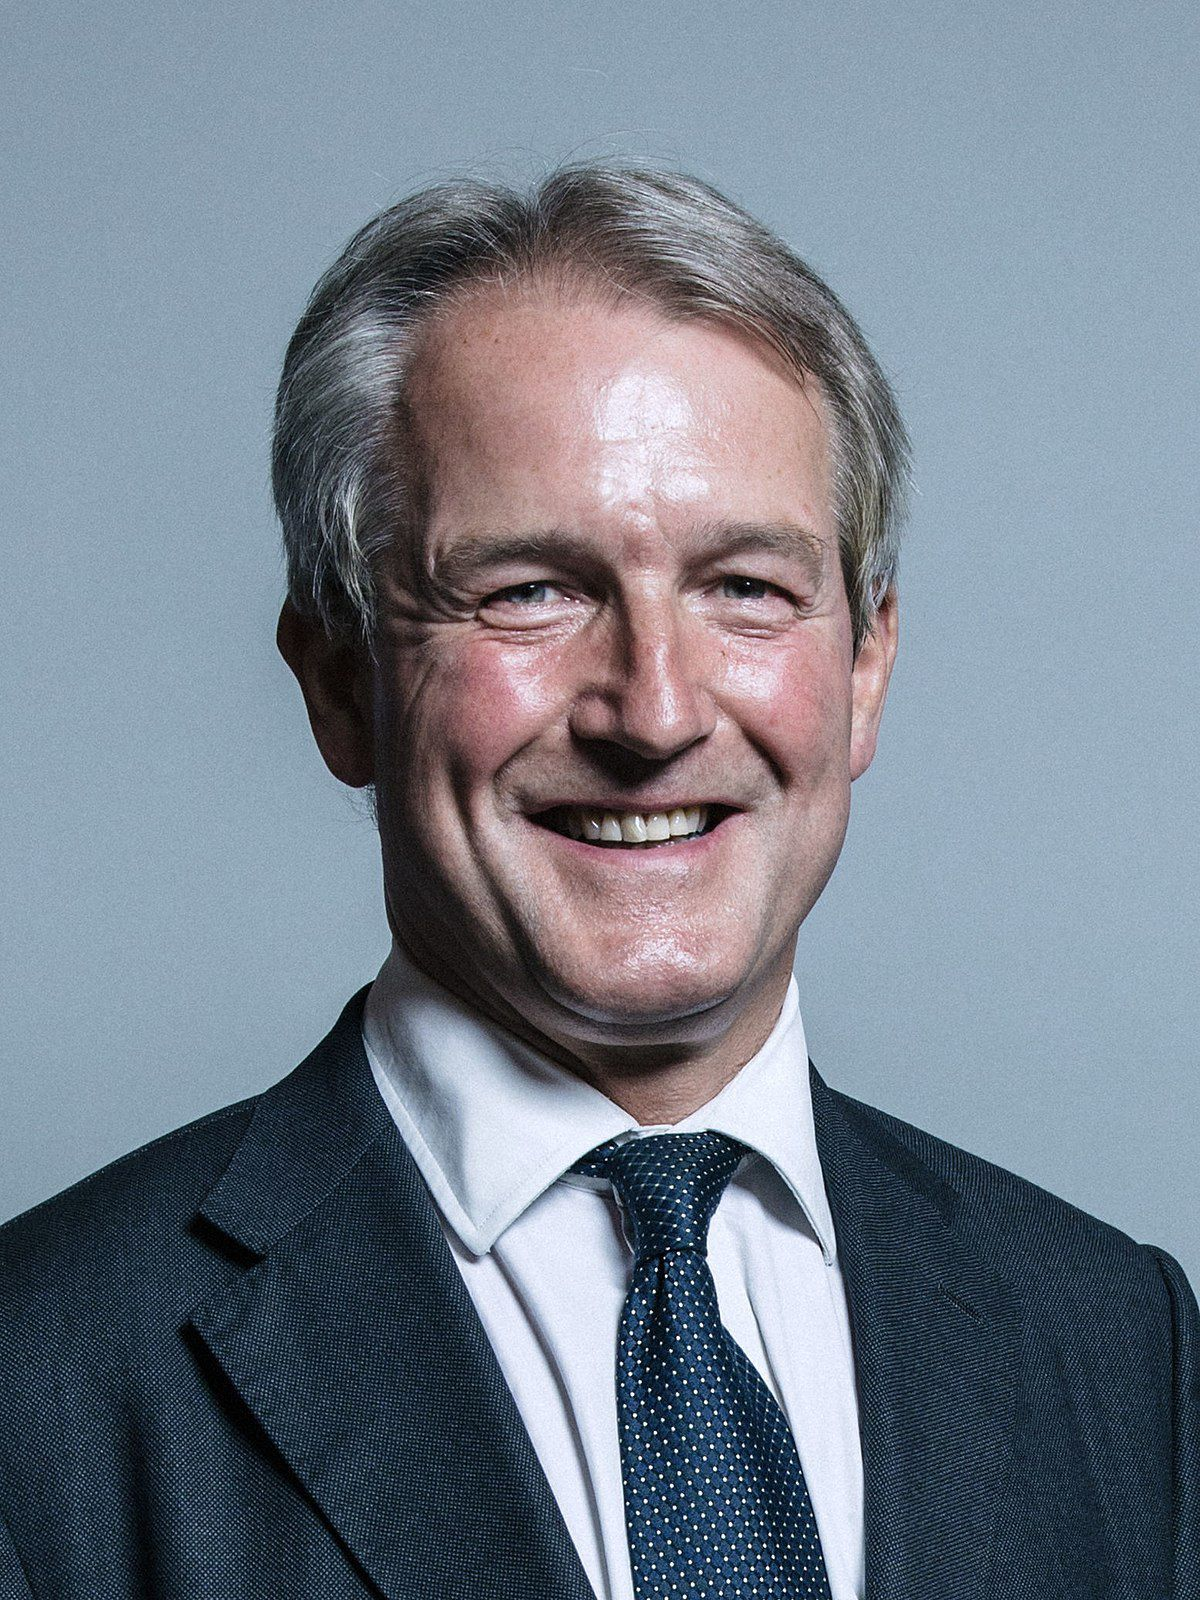 North Shropshire MP Owen Paterson was one of more than 30 MPs to take part in the meeting